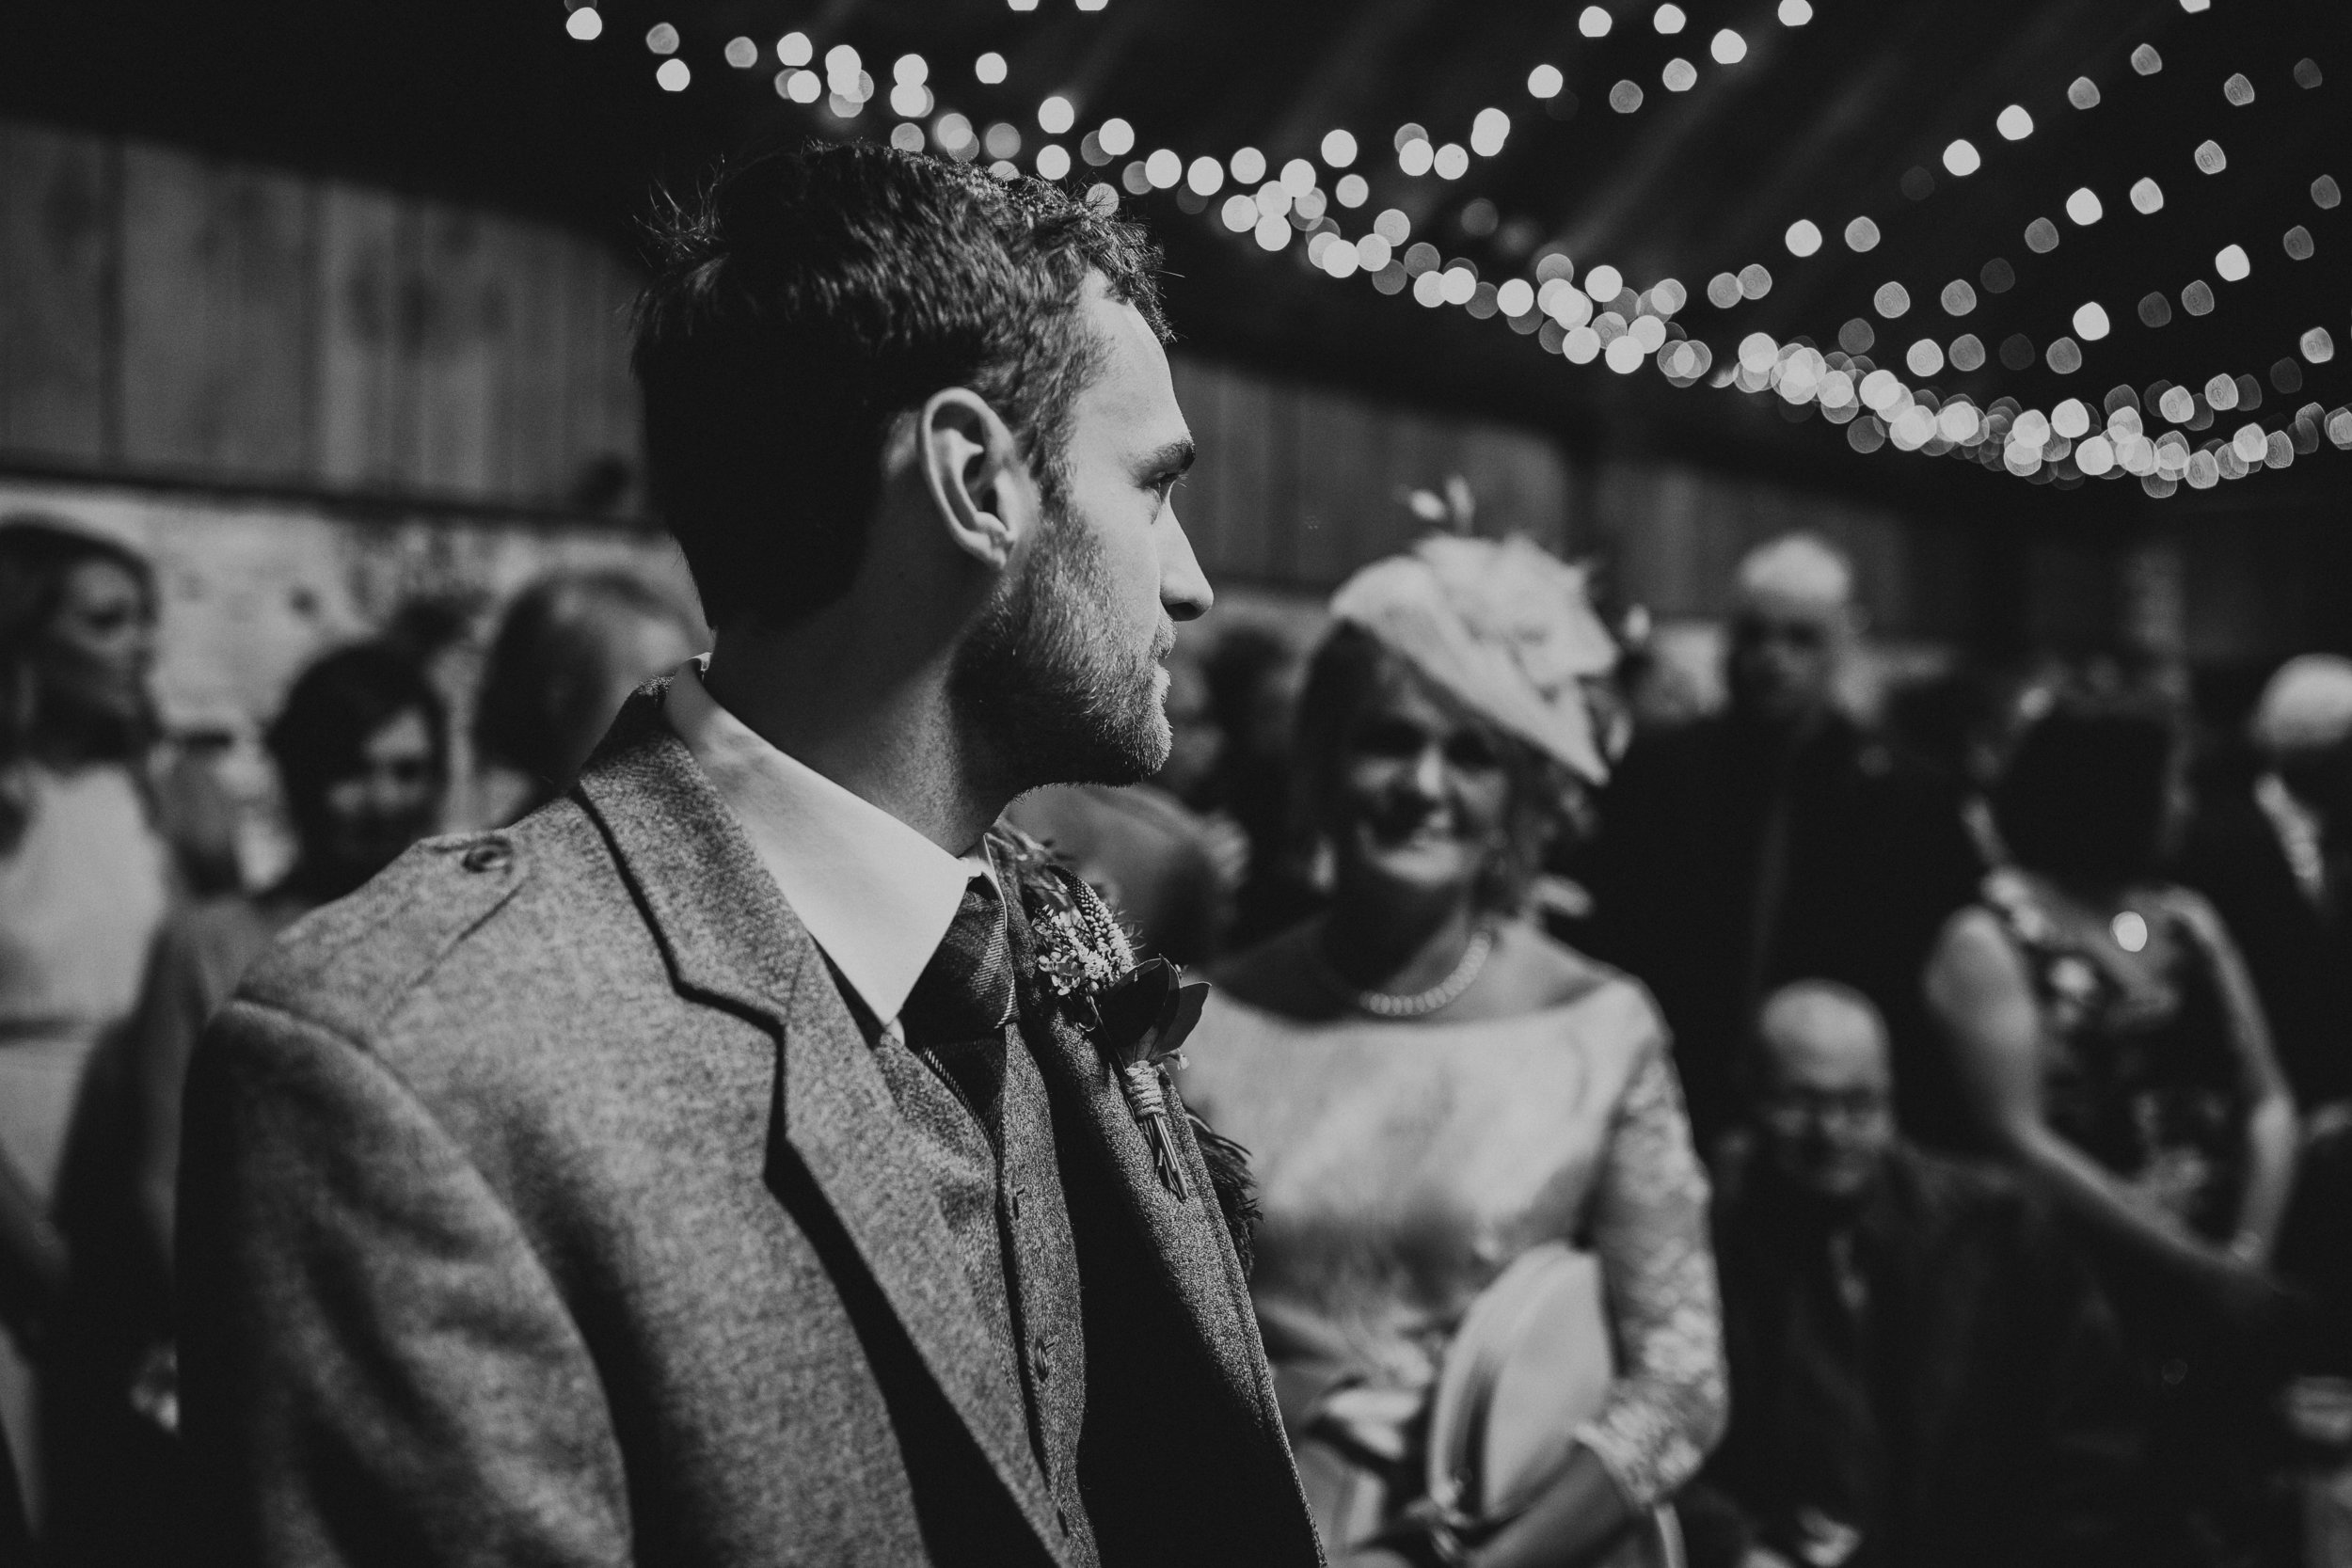 BYRE_AT_INCHYRA_WEDDING_PHOTOGRAPHER_PJ_PHILLIPS_PHOTOGRAPHY_KAYLEIGH_ANDREW_75.jpg